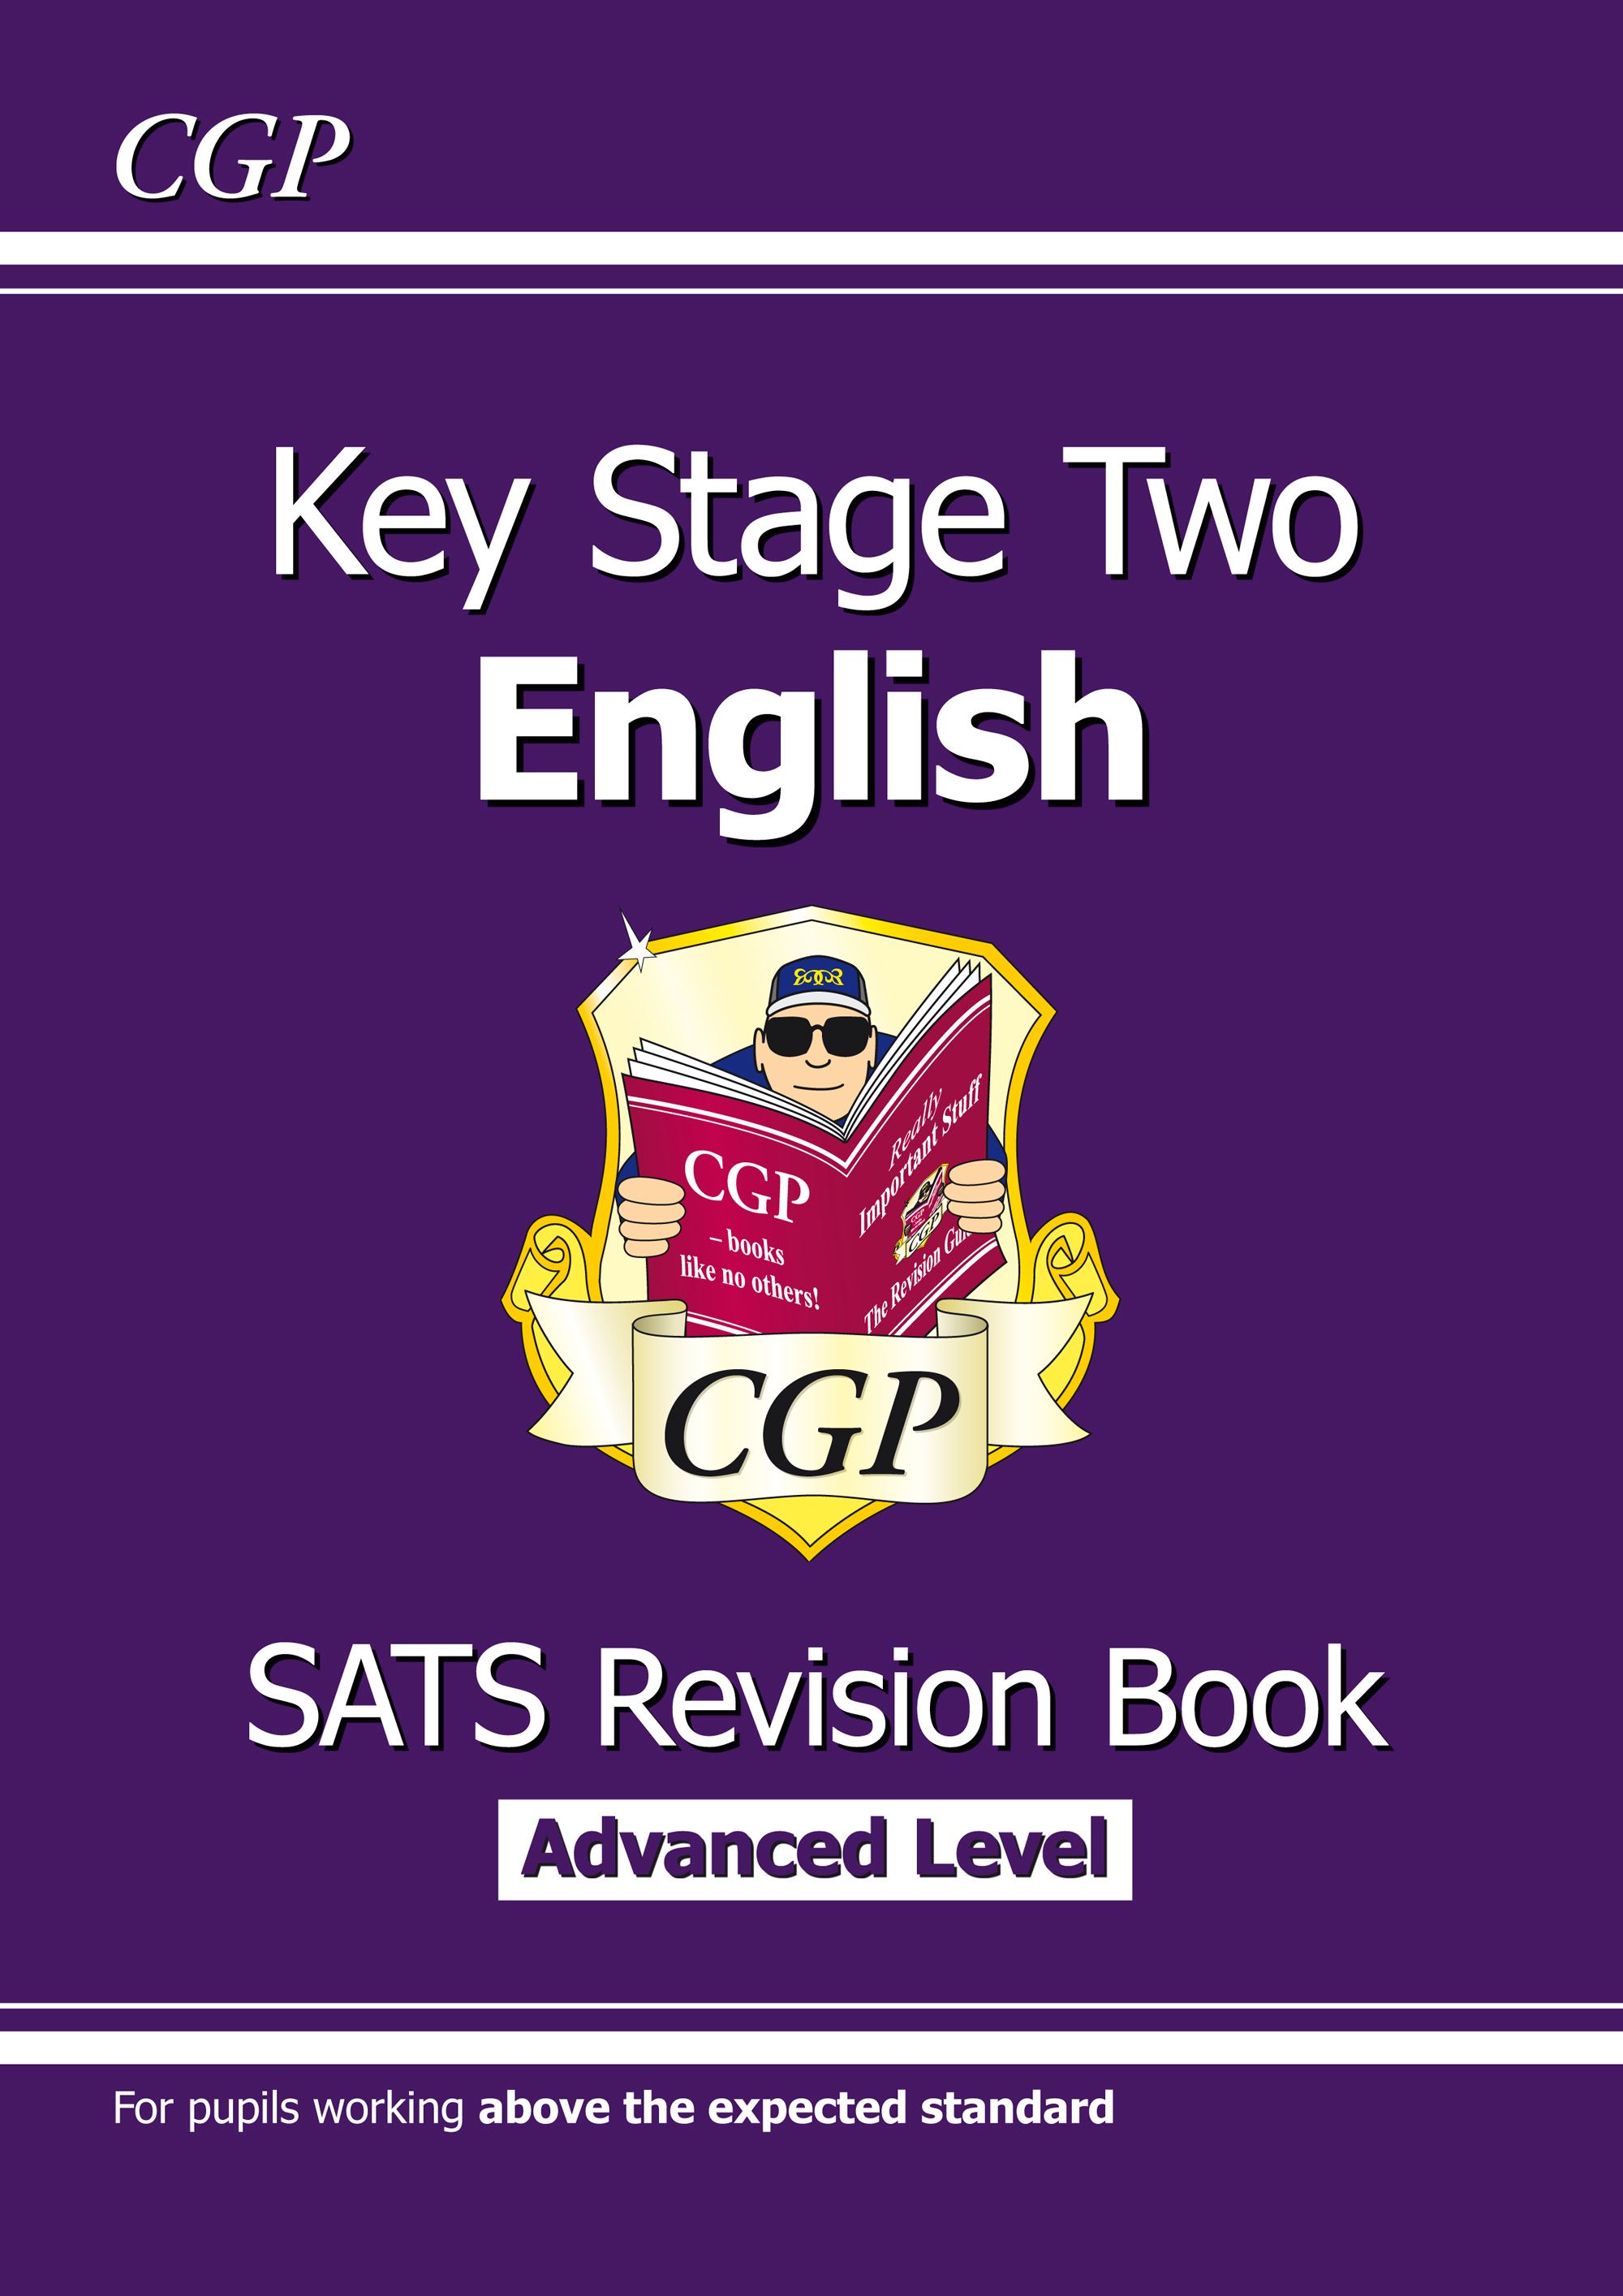 E6HR22 - KS2 English Targeted SATS Revision Book - Advanced Level (for tests in 2018 and beyond)